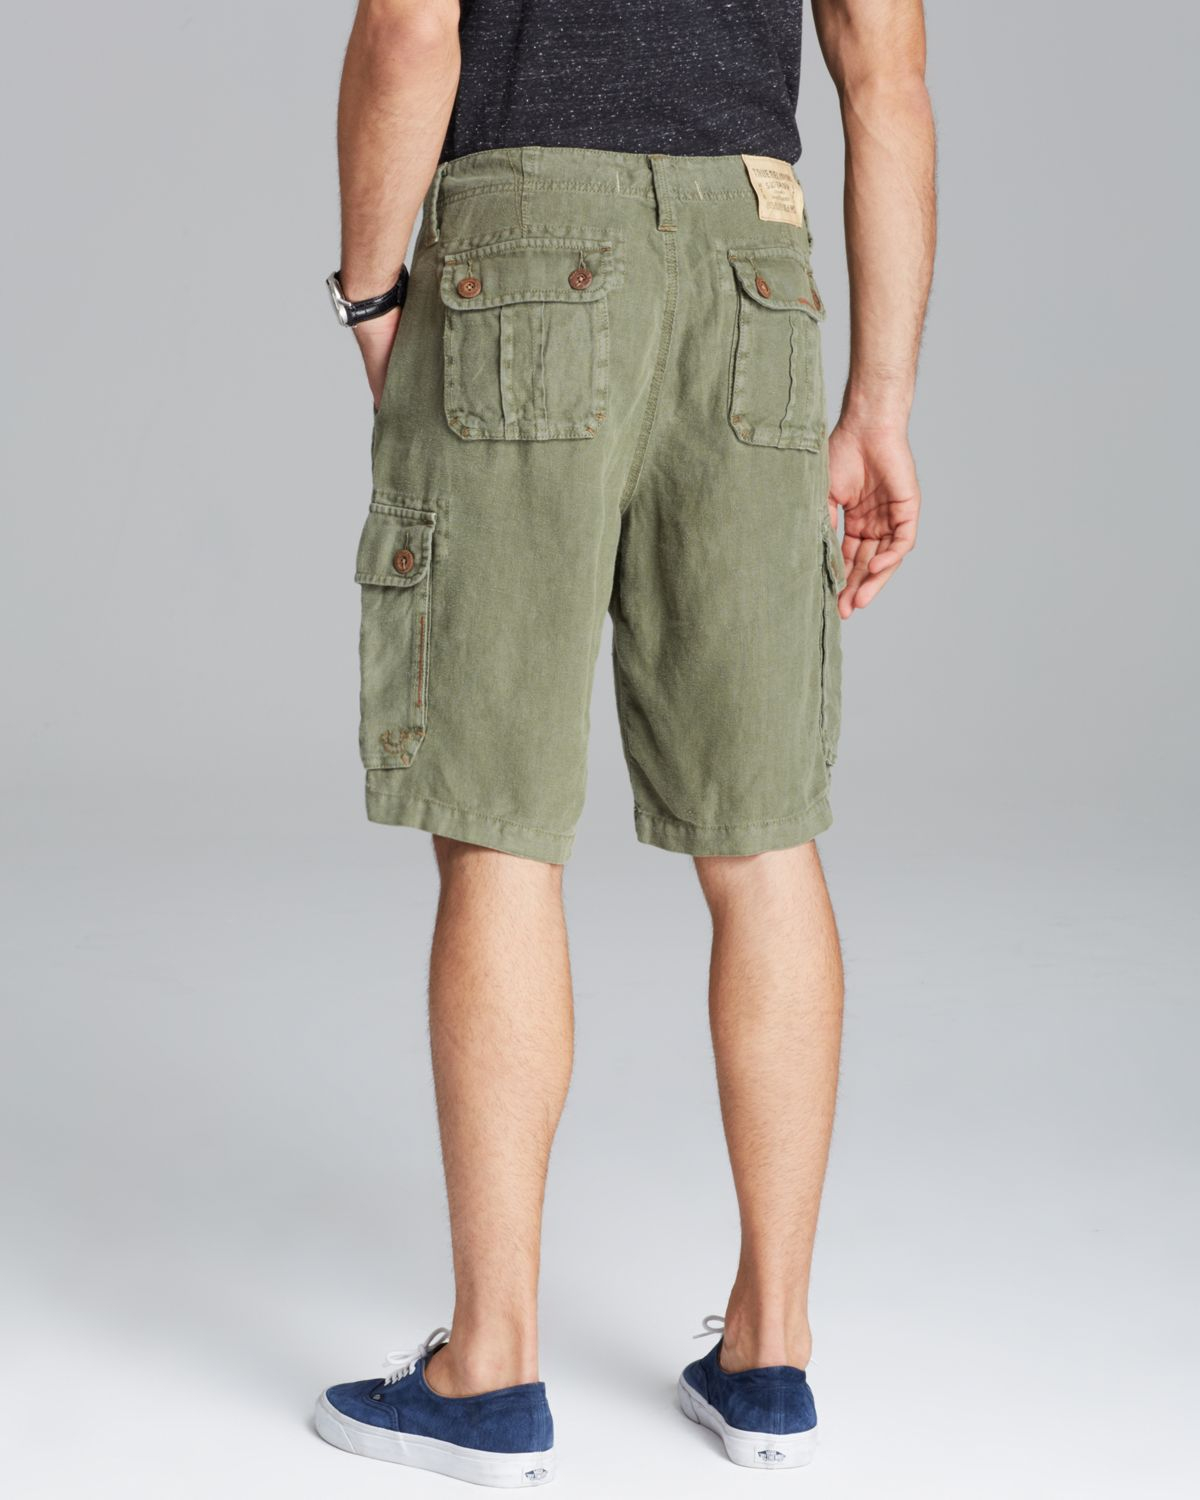 True Religion Recon Linen Cargo Shorts In Green For Men Lyst